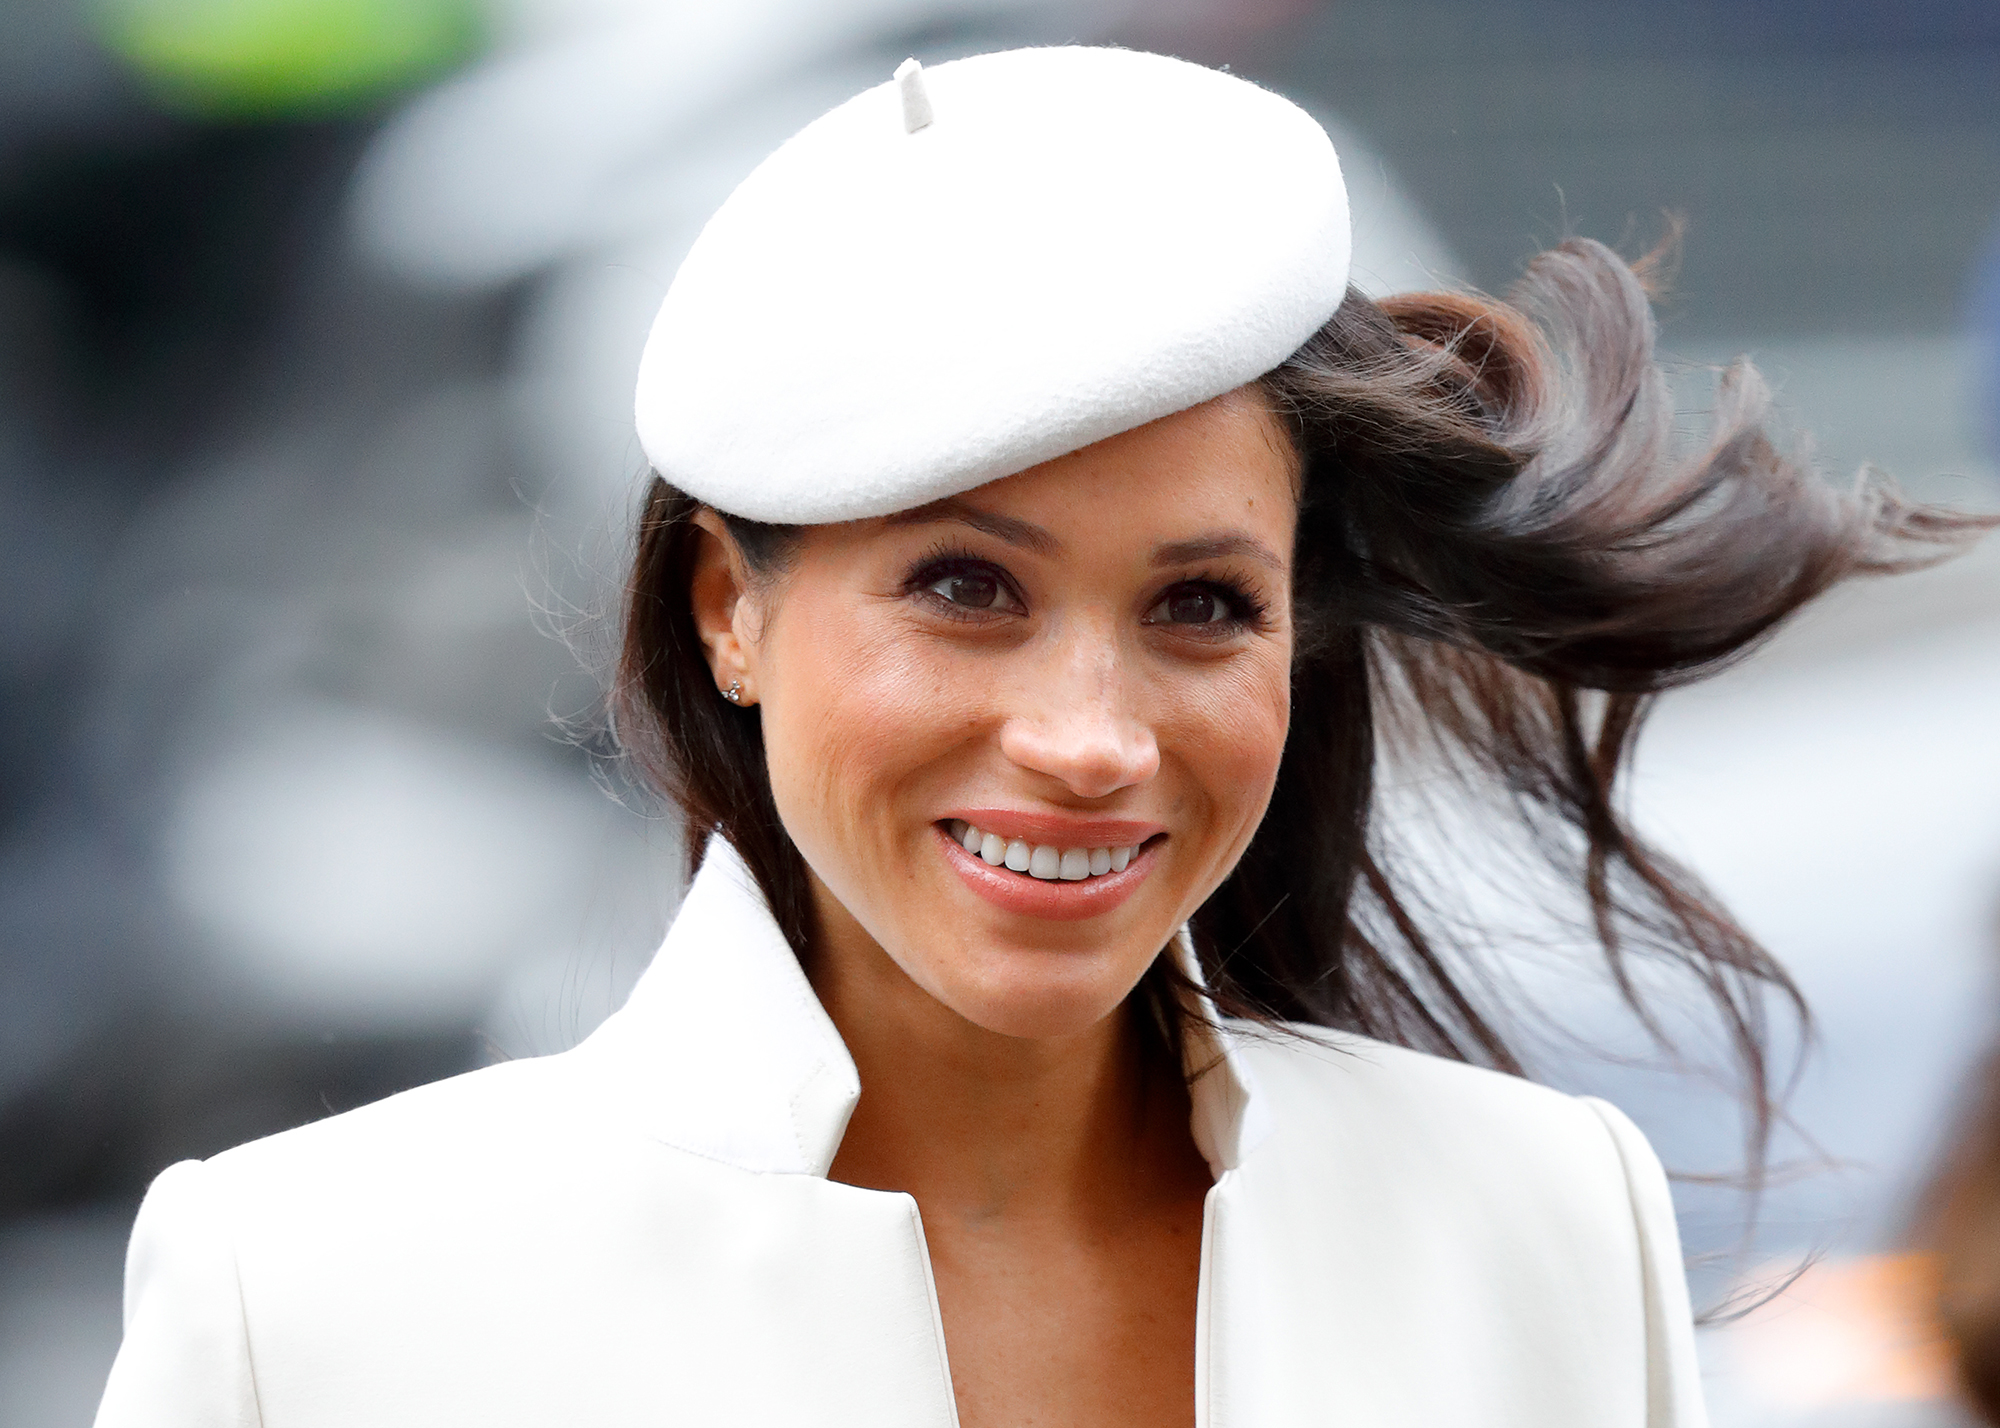 Everything Duchess Meghan Has Said About Her Diet and Fitness Tricks - Meghan Markle attends the 2018 Commonwealth Day service at Westminster Abbey on March 12, 2018 in London, England.